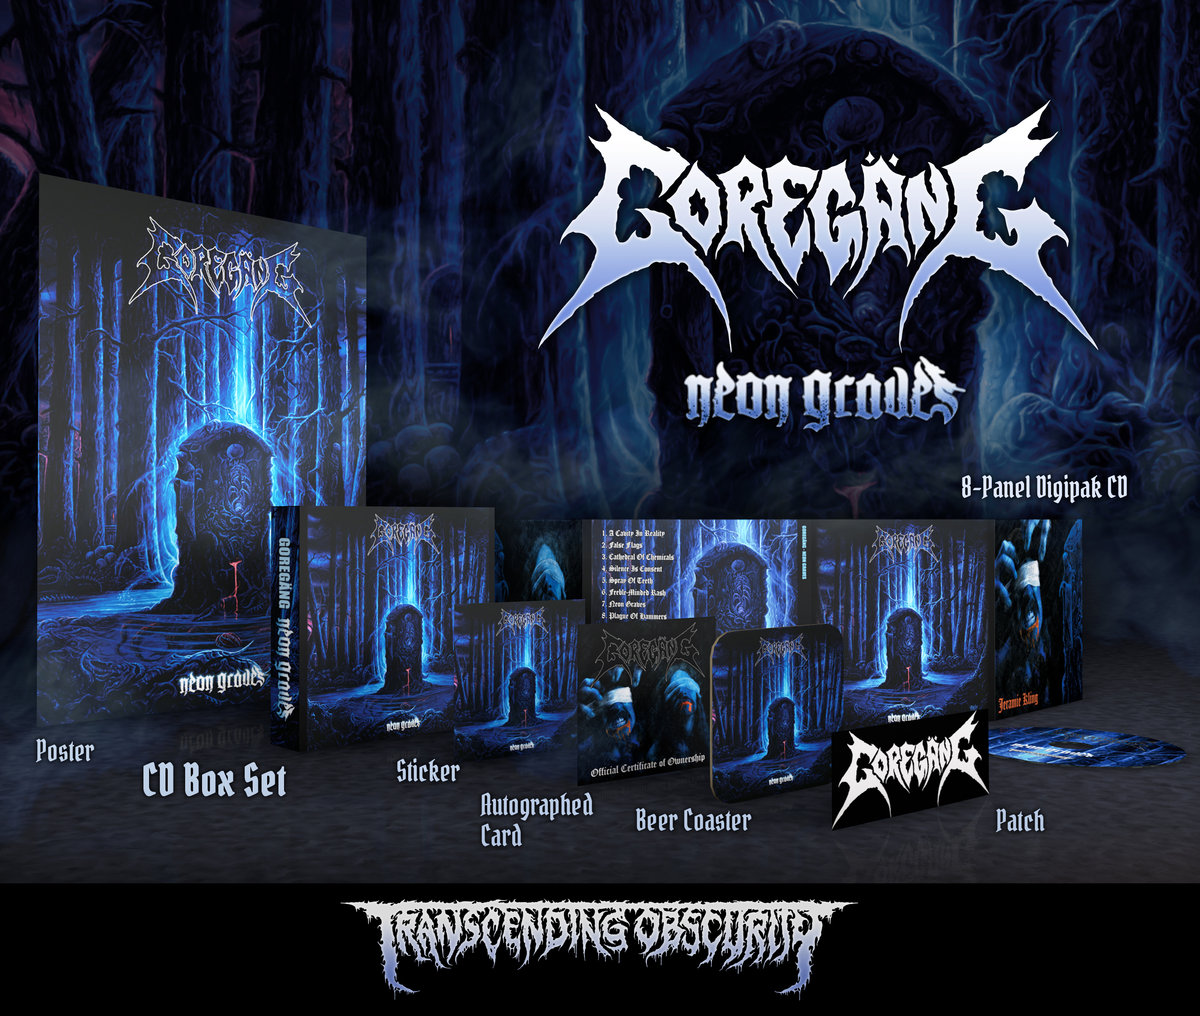 GOREGӒNG -  Neon Graves (Death Metal​/​Crust) Silver-embossed CD Box Set